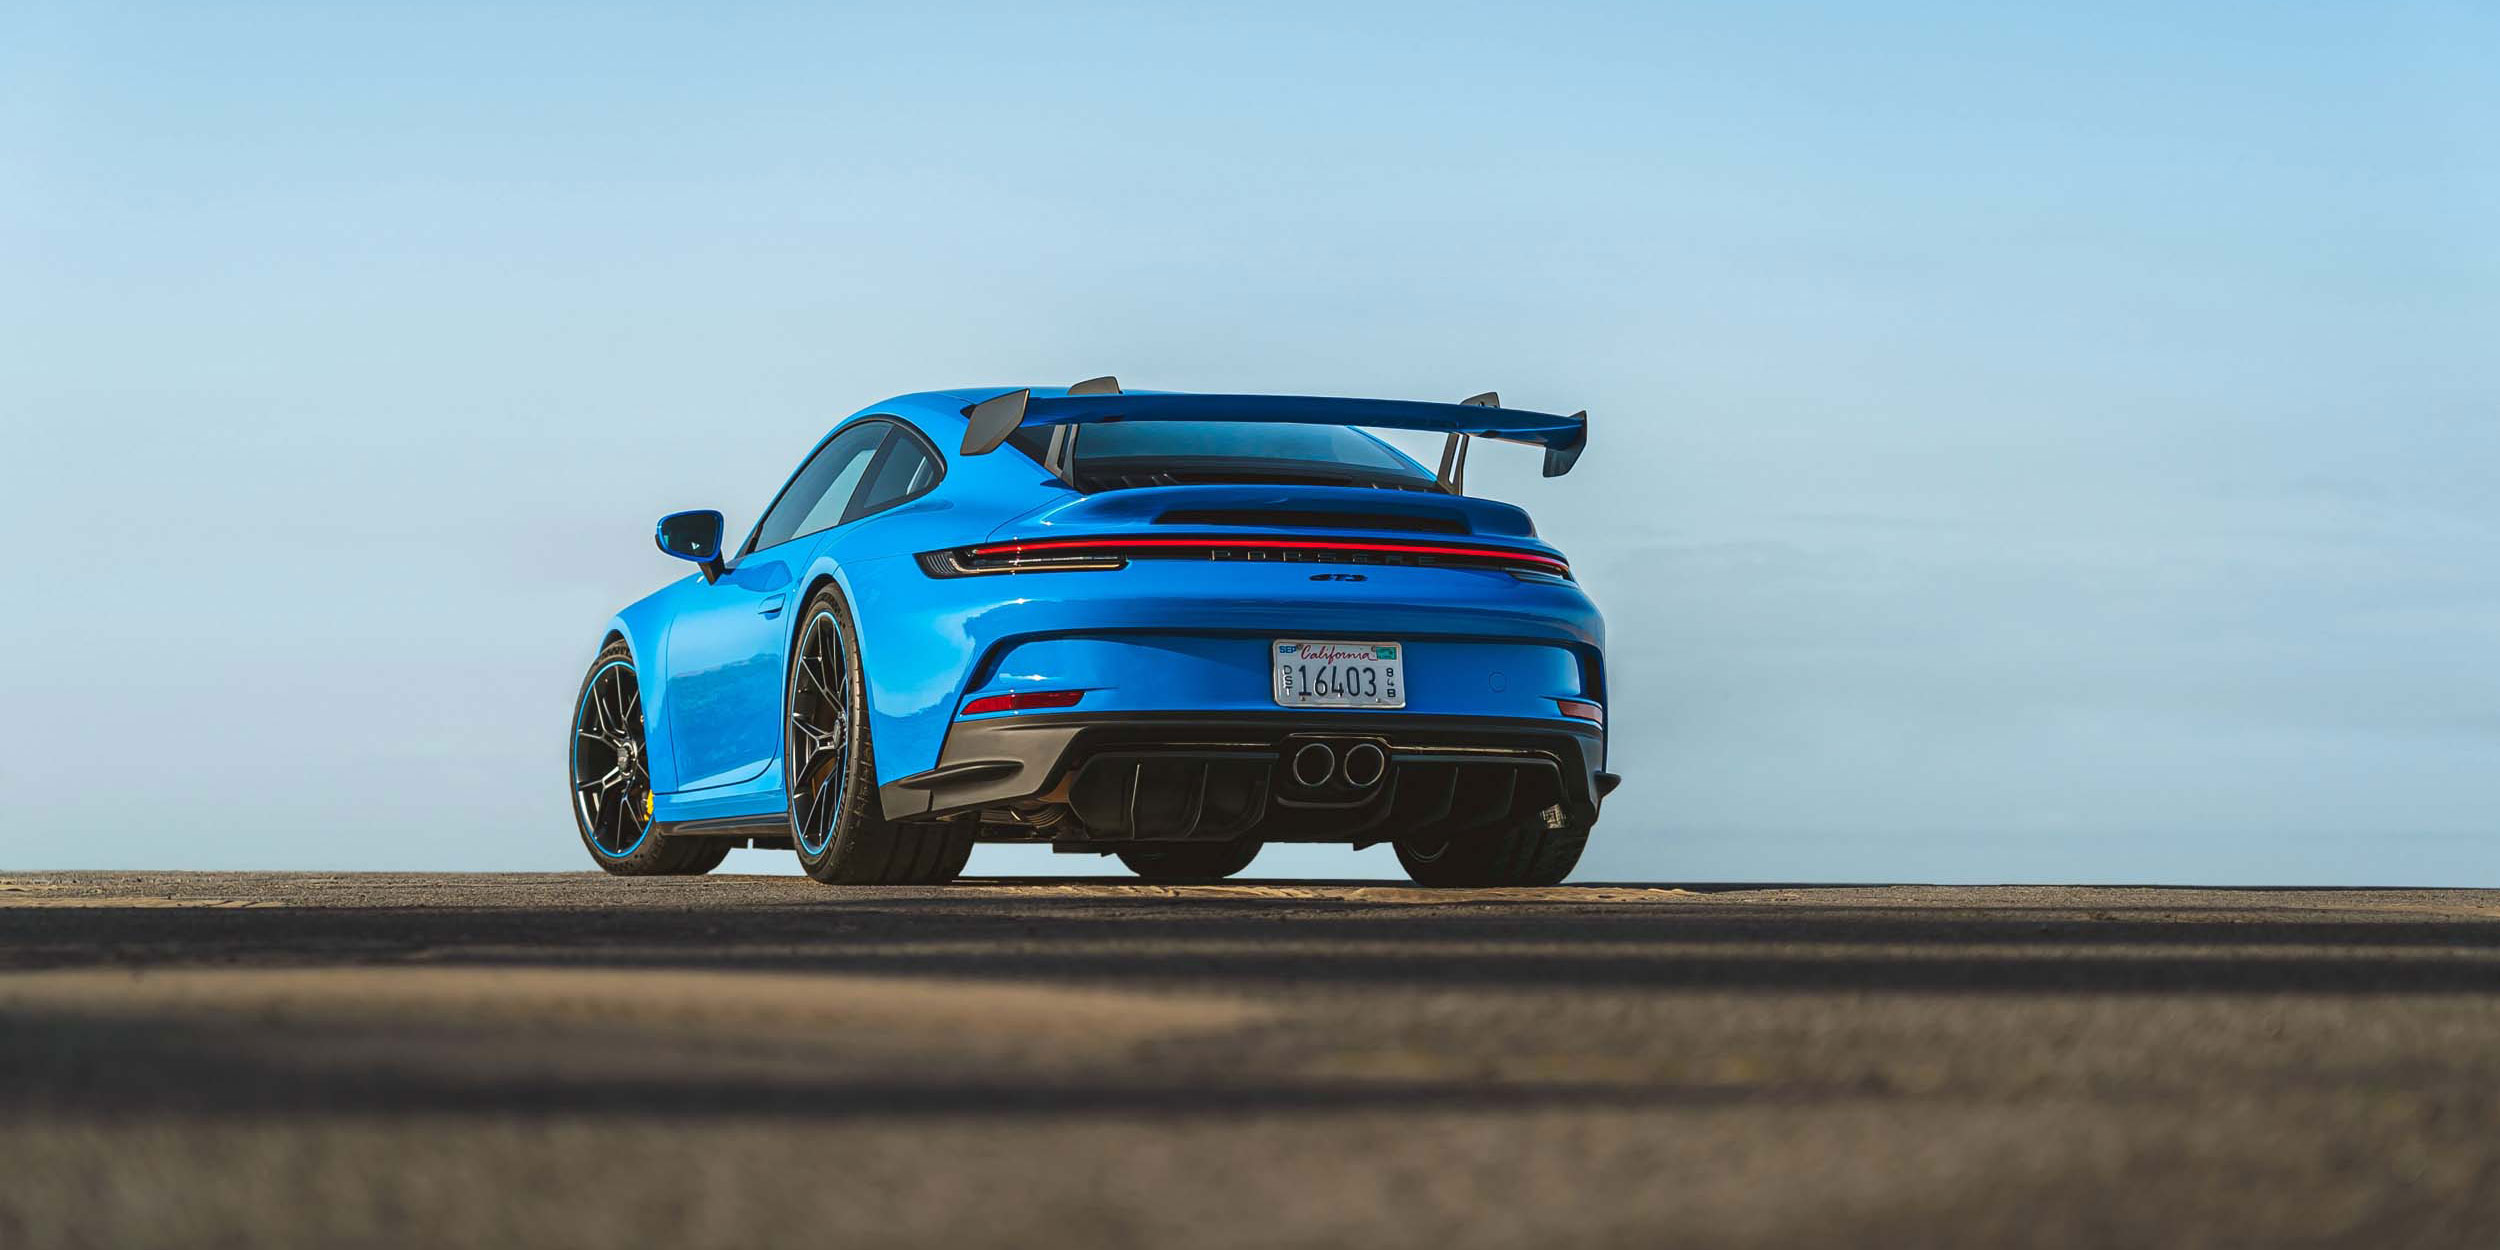 2022 Porsche 911 announced: 911 GT3 pricing, enhanced tech and new options across the range